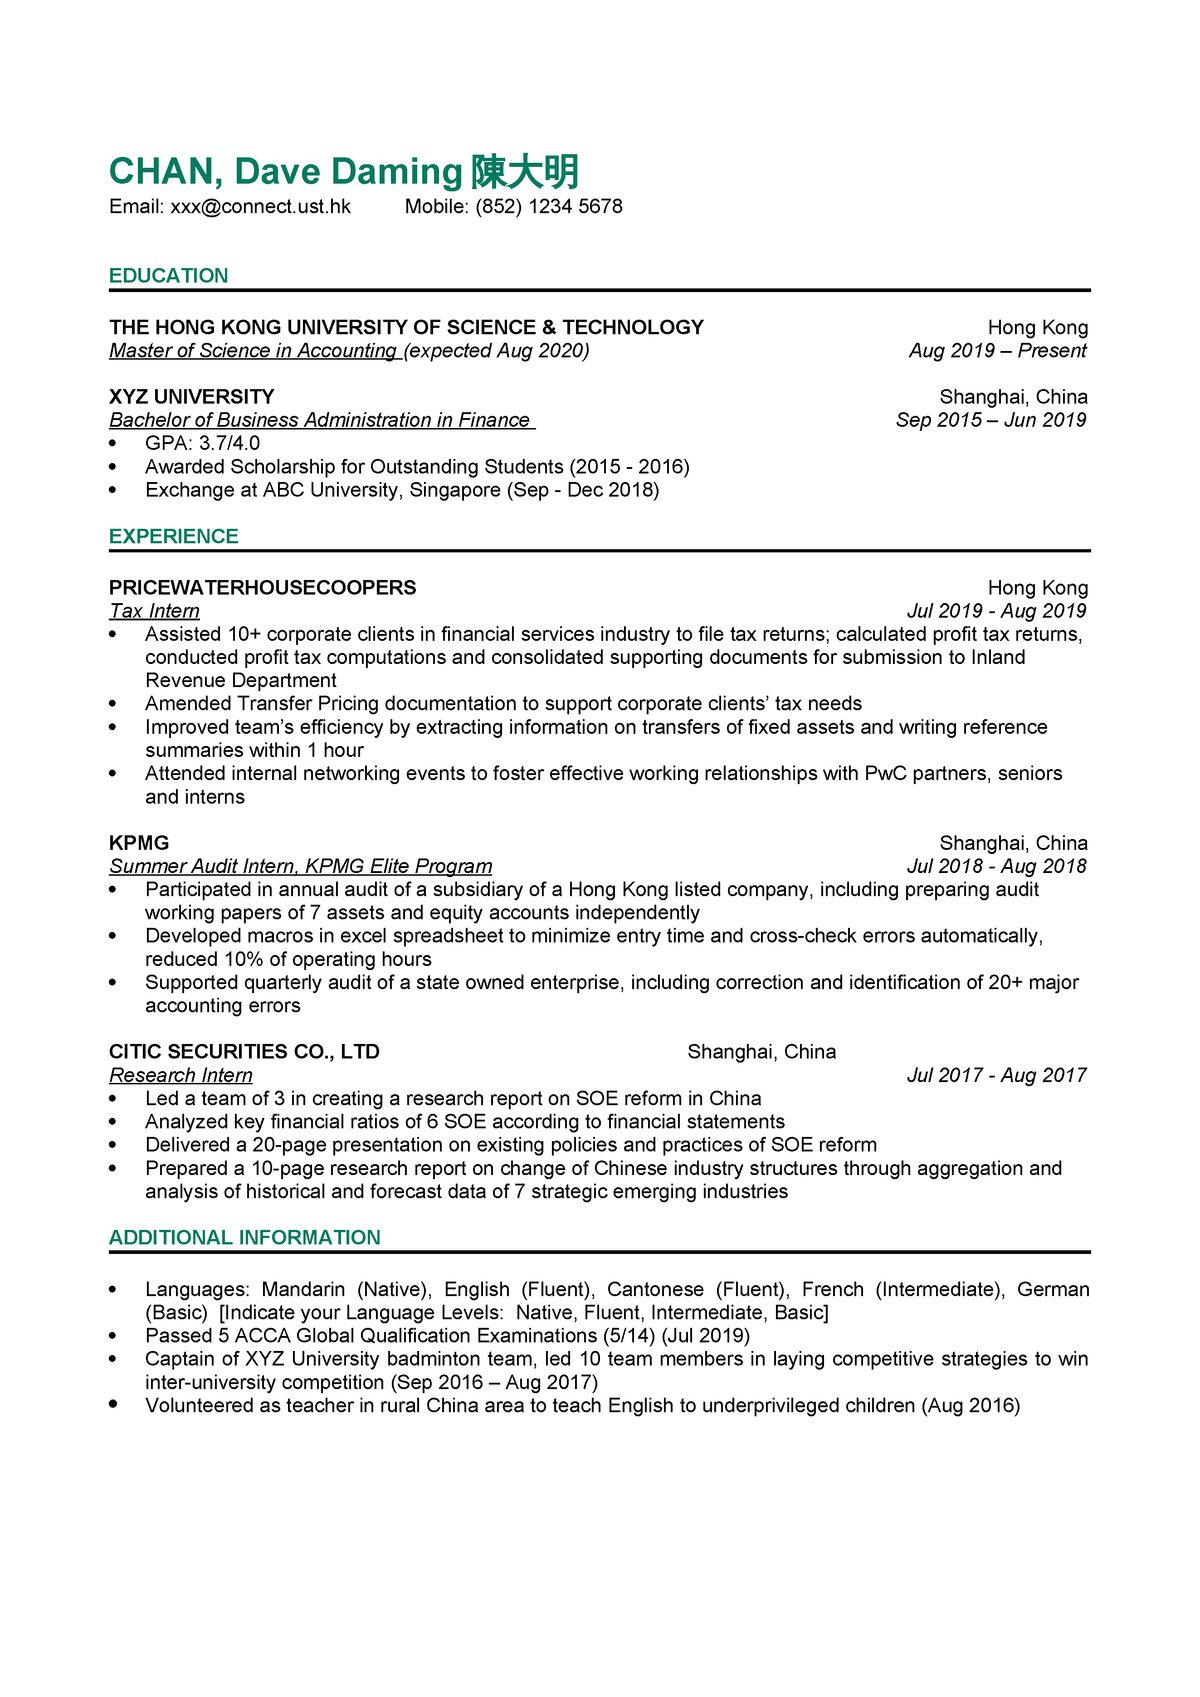 4- Resume Template - Career Building for Science Students